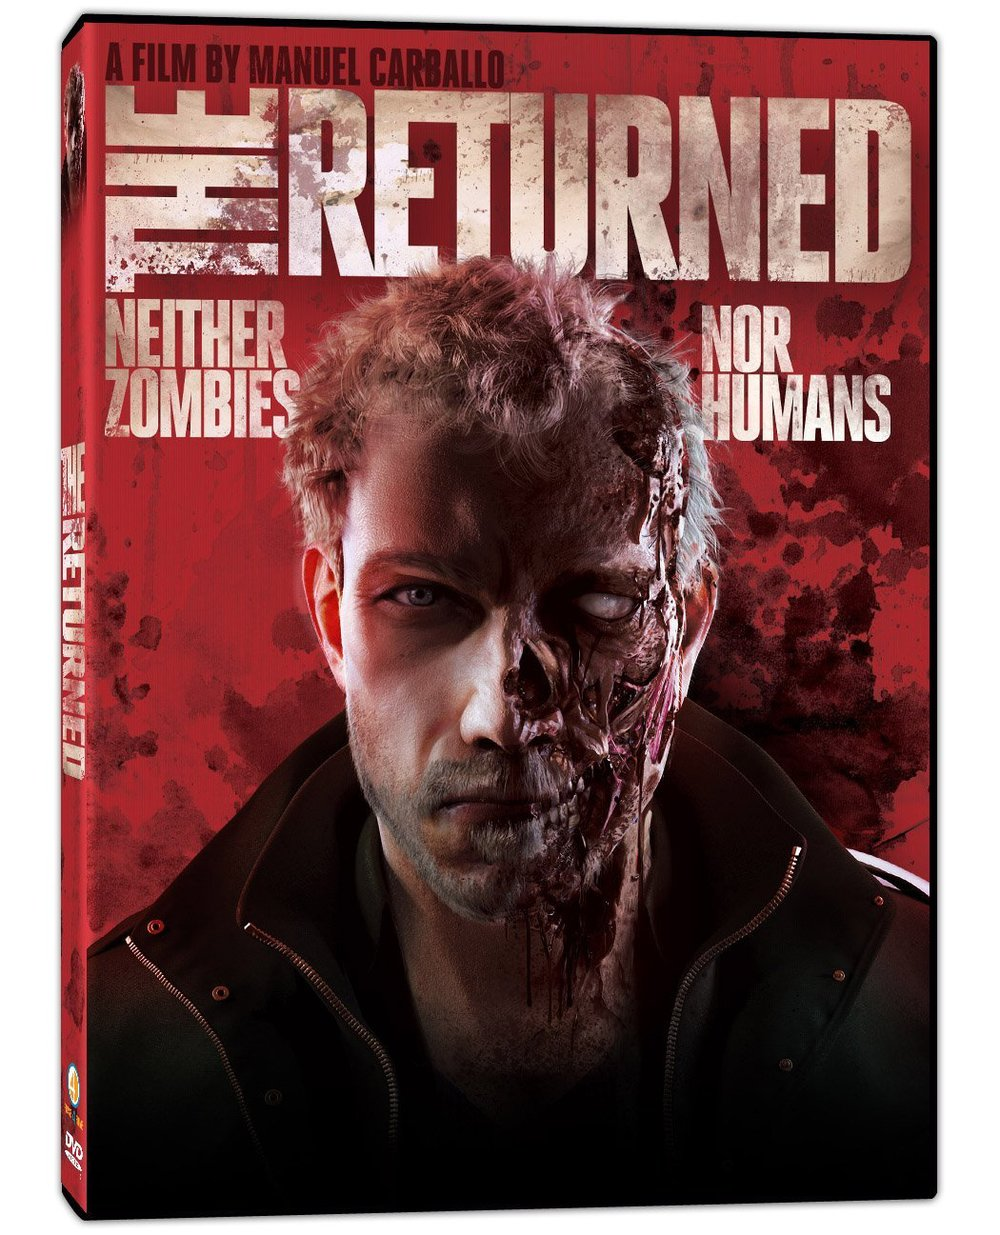 THE RETURNED DVD COVER.jpg